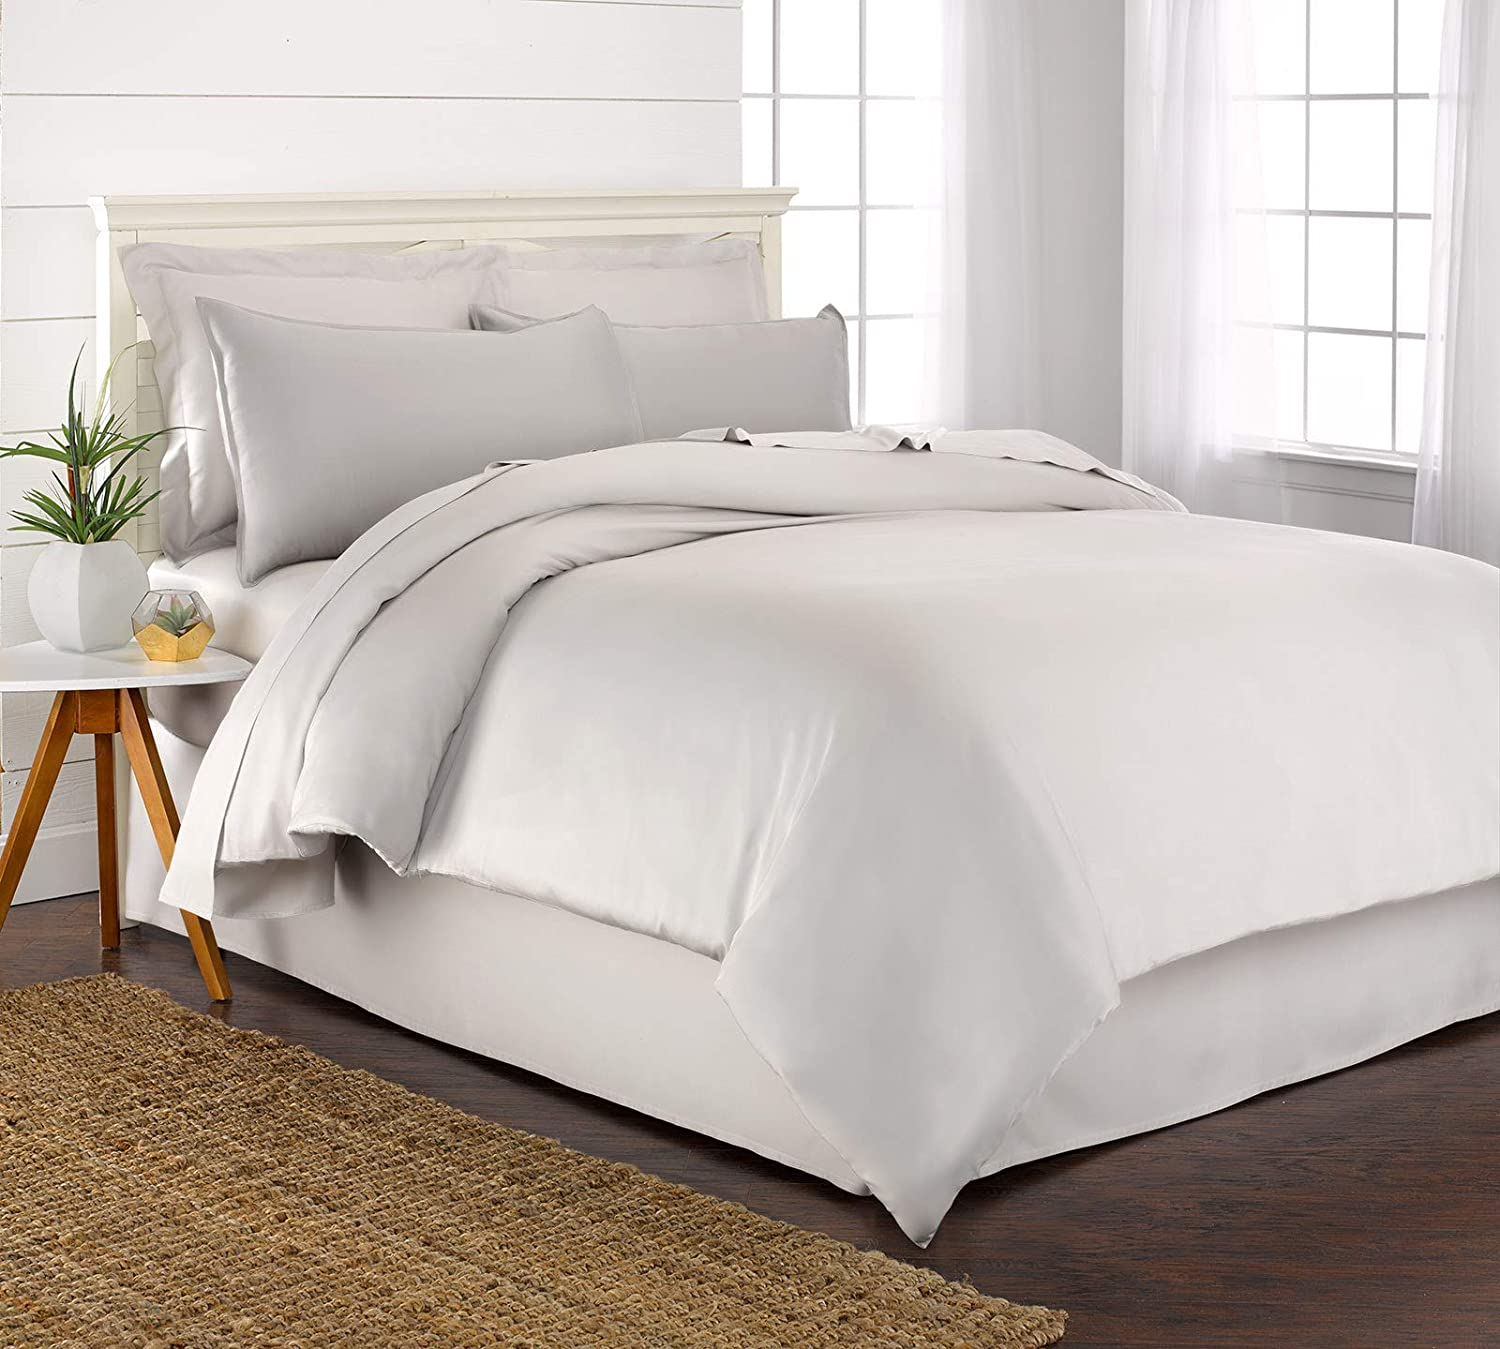 """Incredibly Soft /& Smooth Twin Bed Skirt - 100/% Organic Bamboo Bed Skirt with 16/"""" Drop 39/"""" x 75/"""" Charcoal Pure Bamboo"""